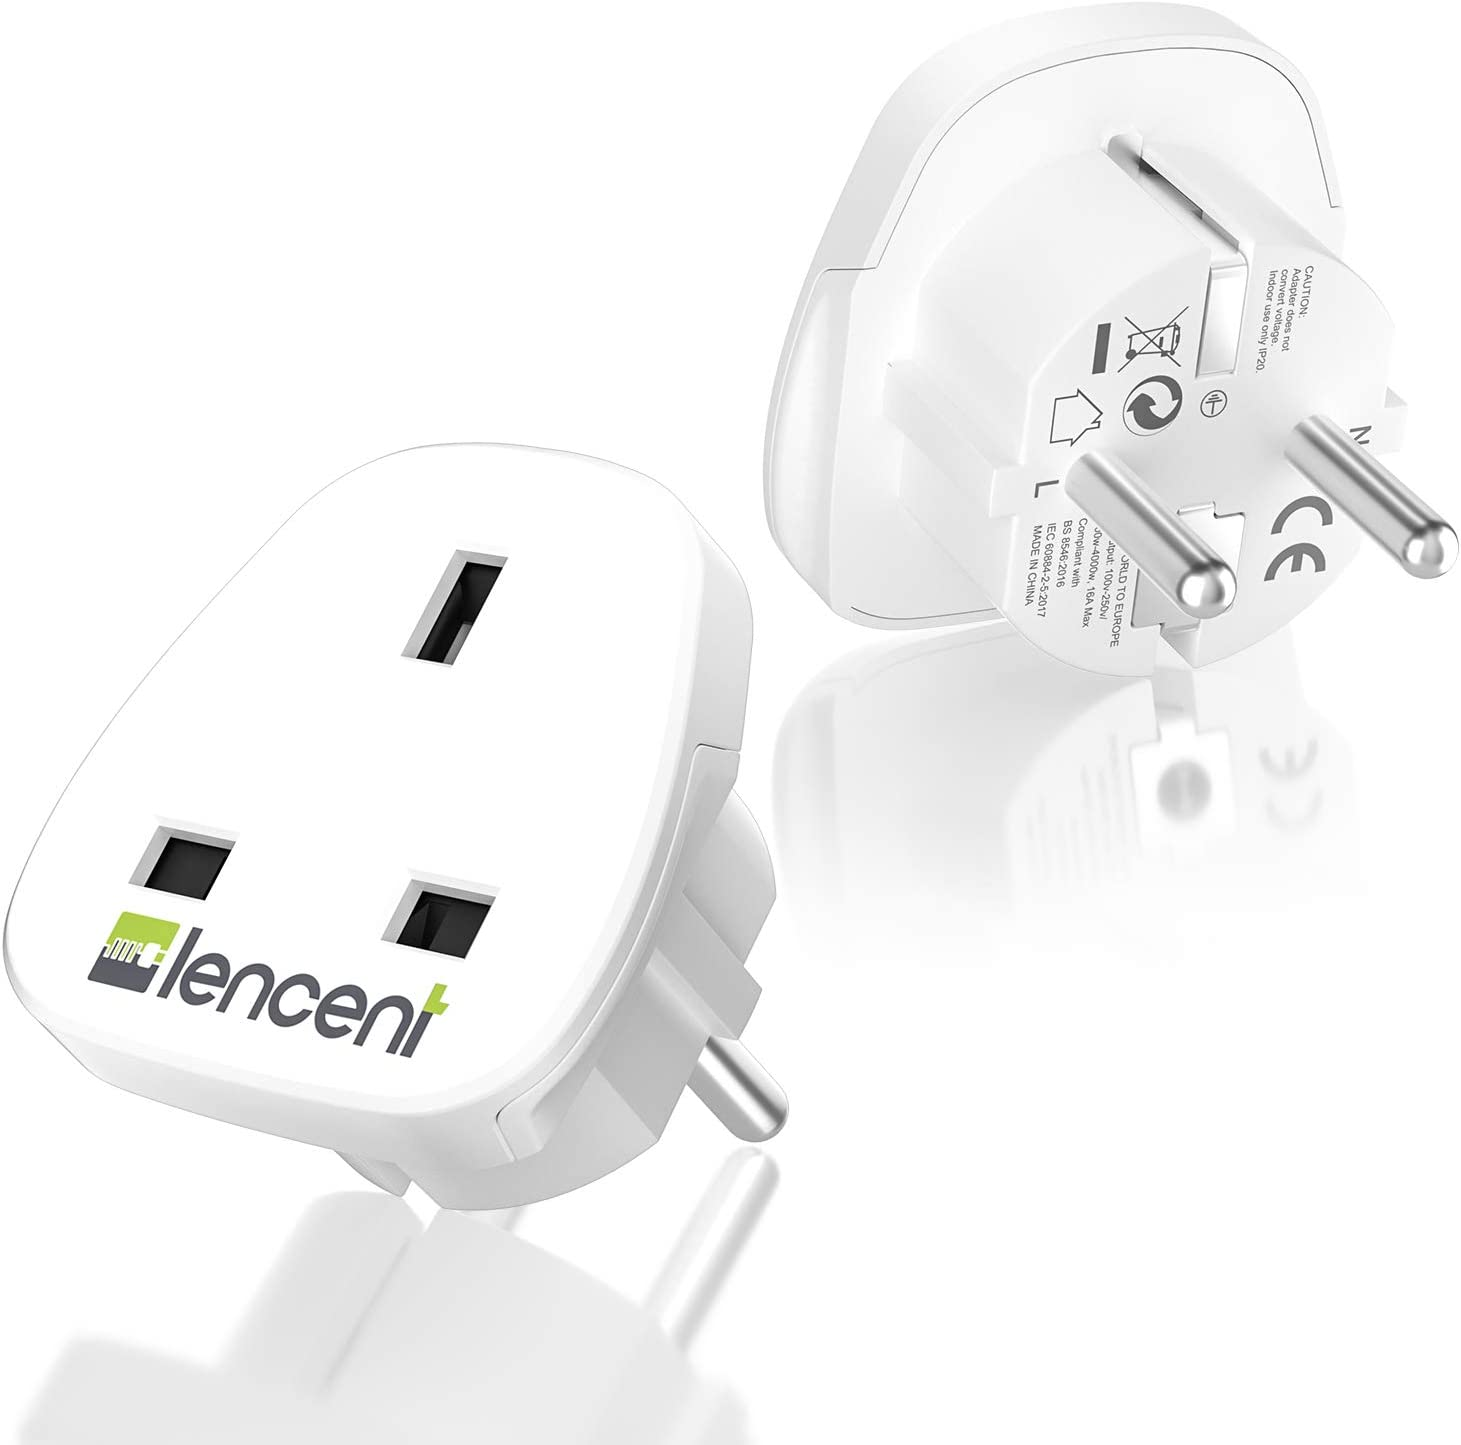 LENCENT 2X Adaptador de Enchufe de UK a Enchufe Europeo, Adaptador UK España, Adaptador UK EU, Adaptador de Viaje inglés a español: Amazon.es: Electrónica